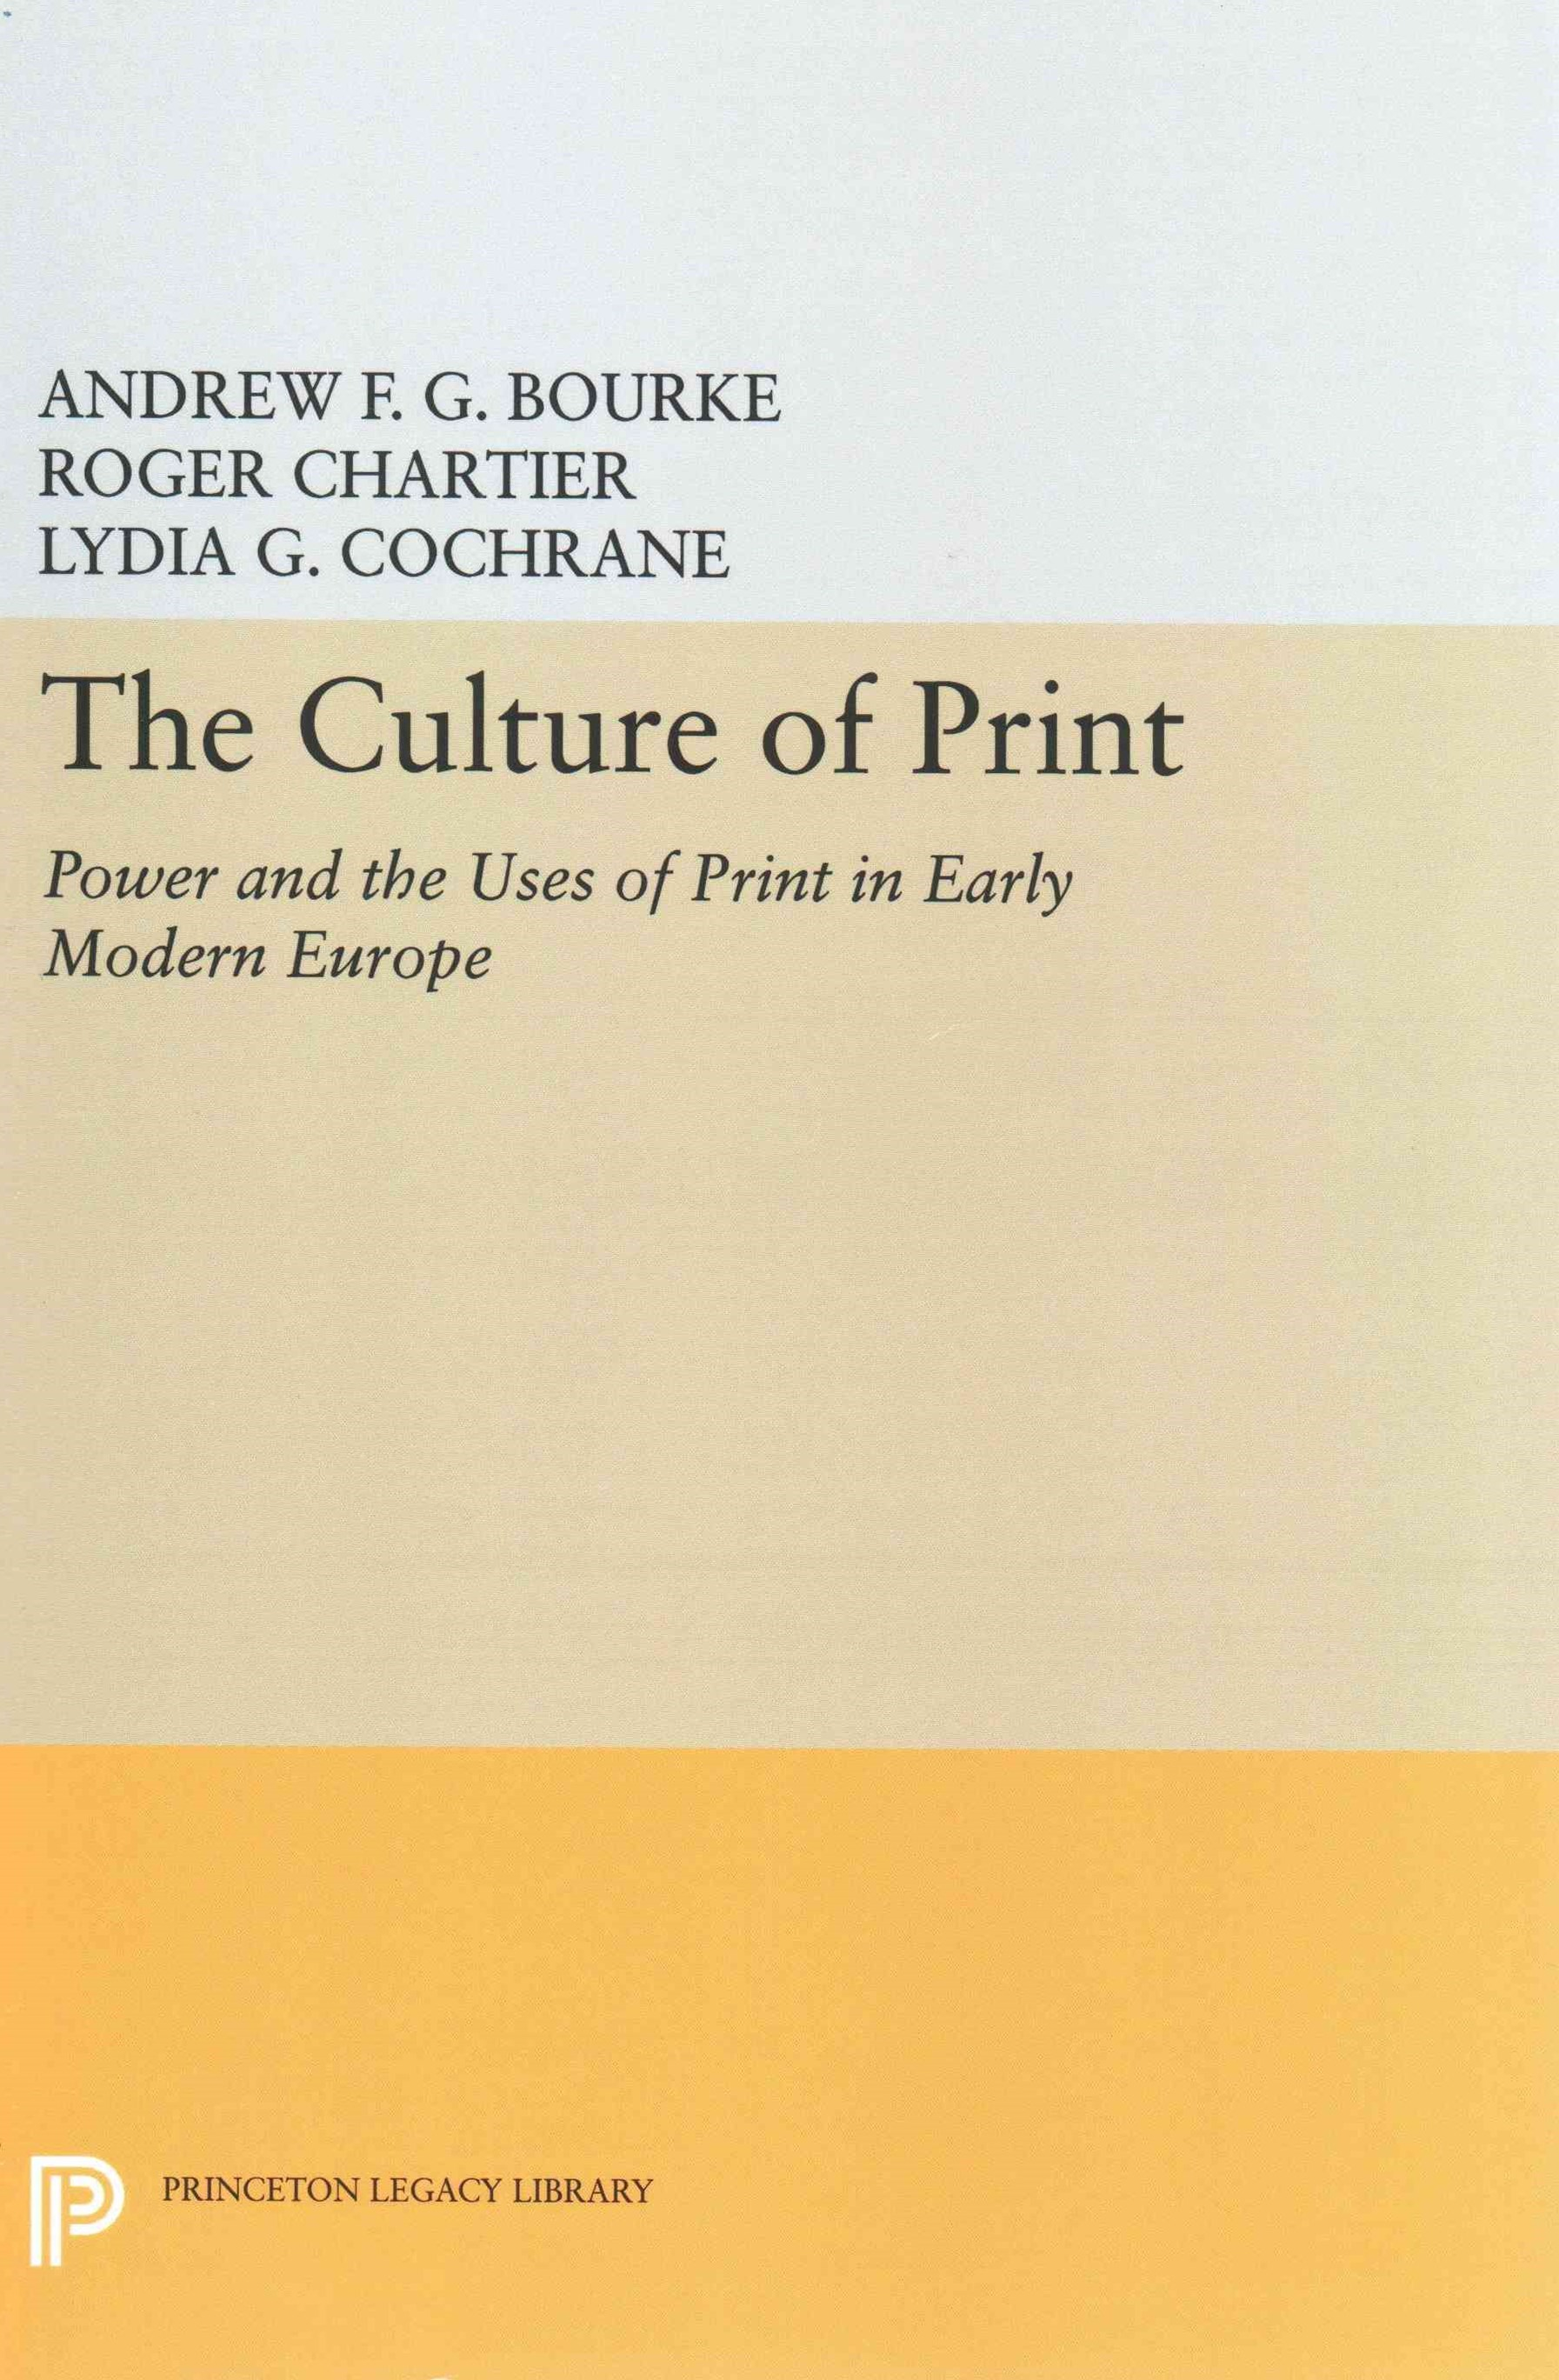 The Culture of Print